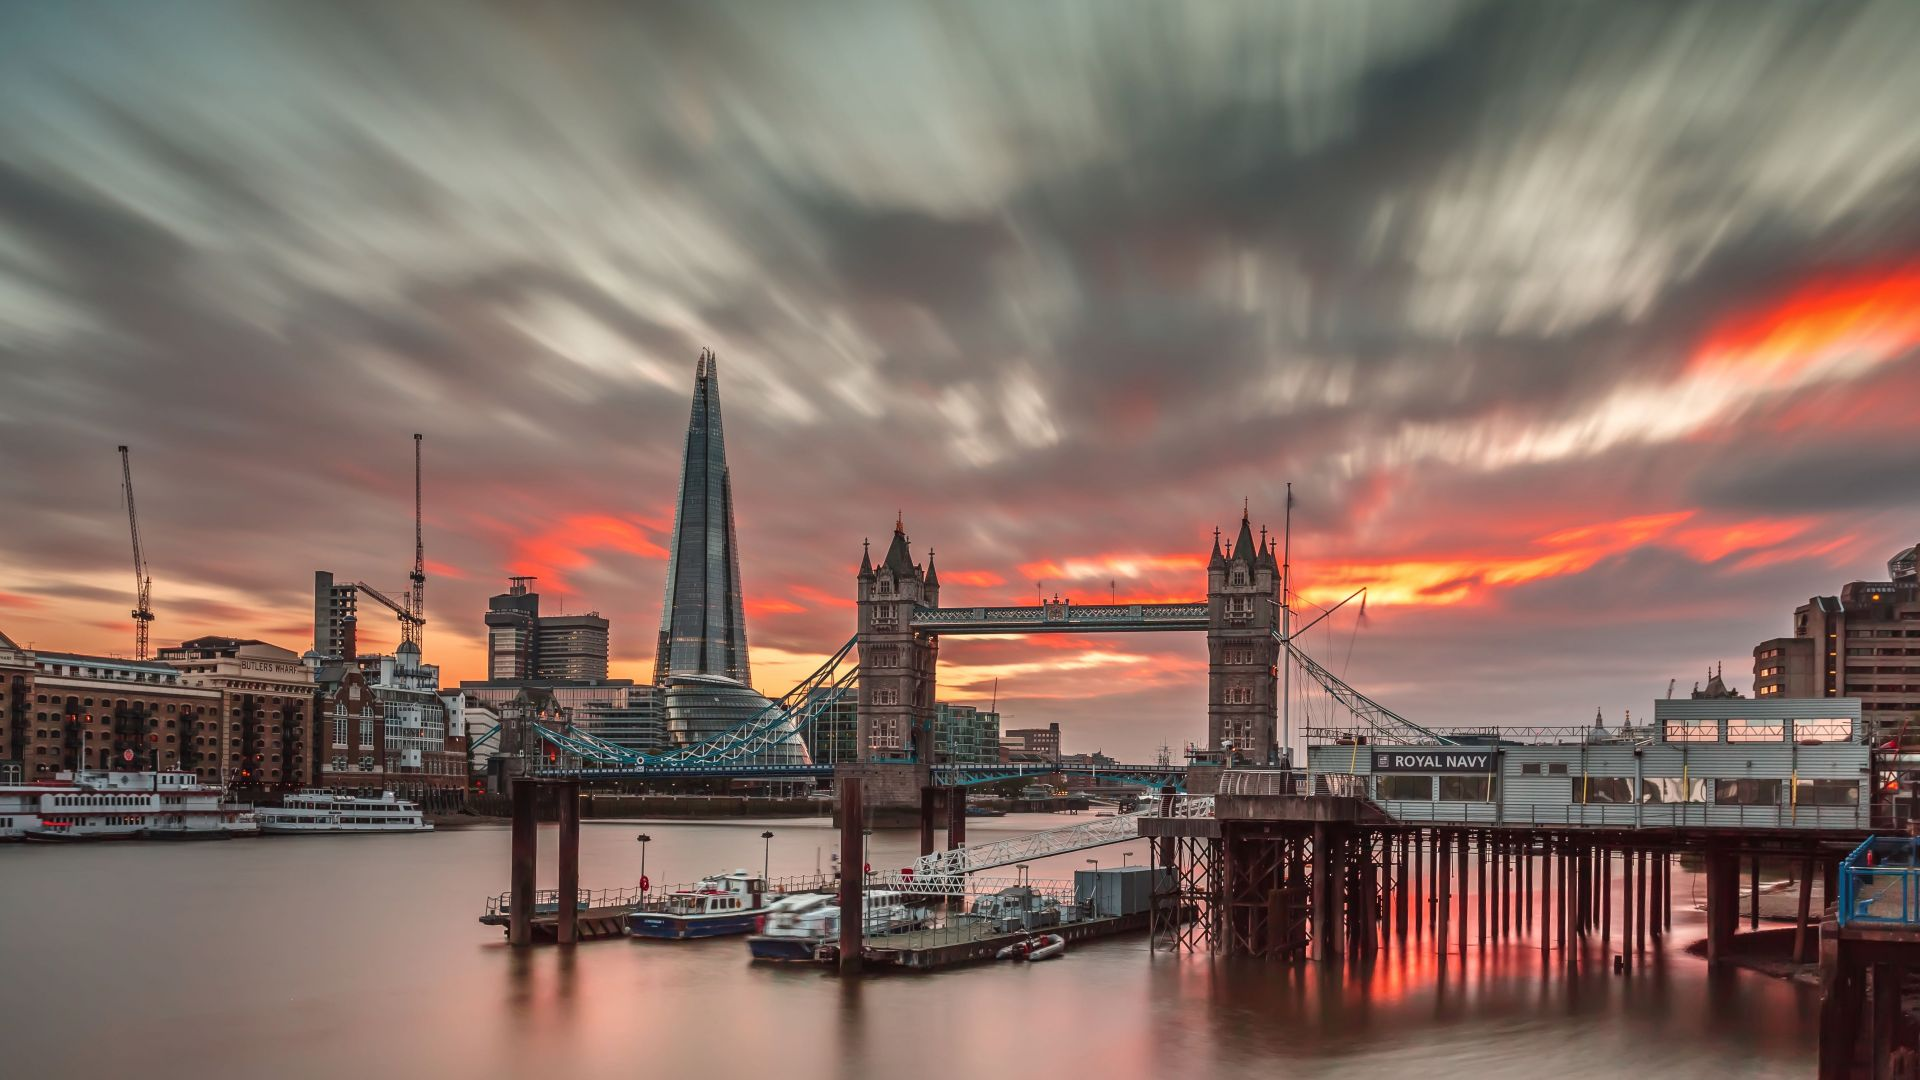 Лоднон, Англия, путешествие, туризм, закат, London, England, travel, tourism, sunset